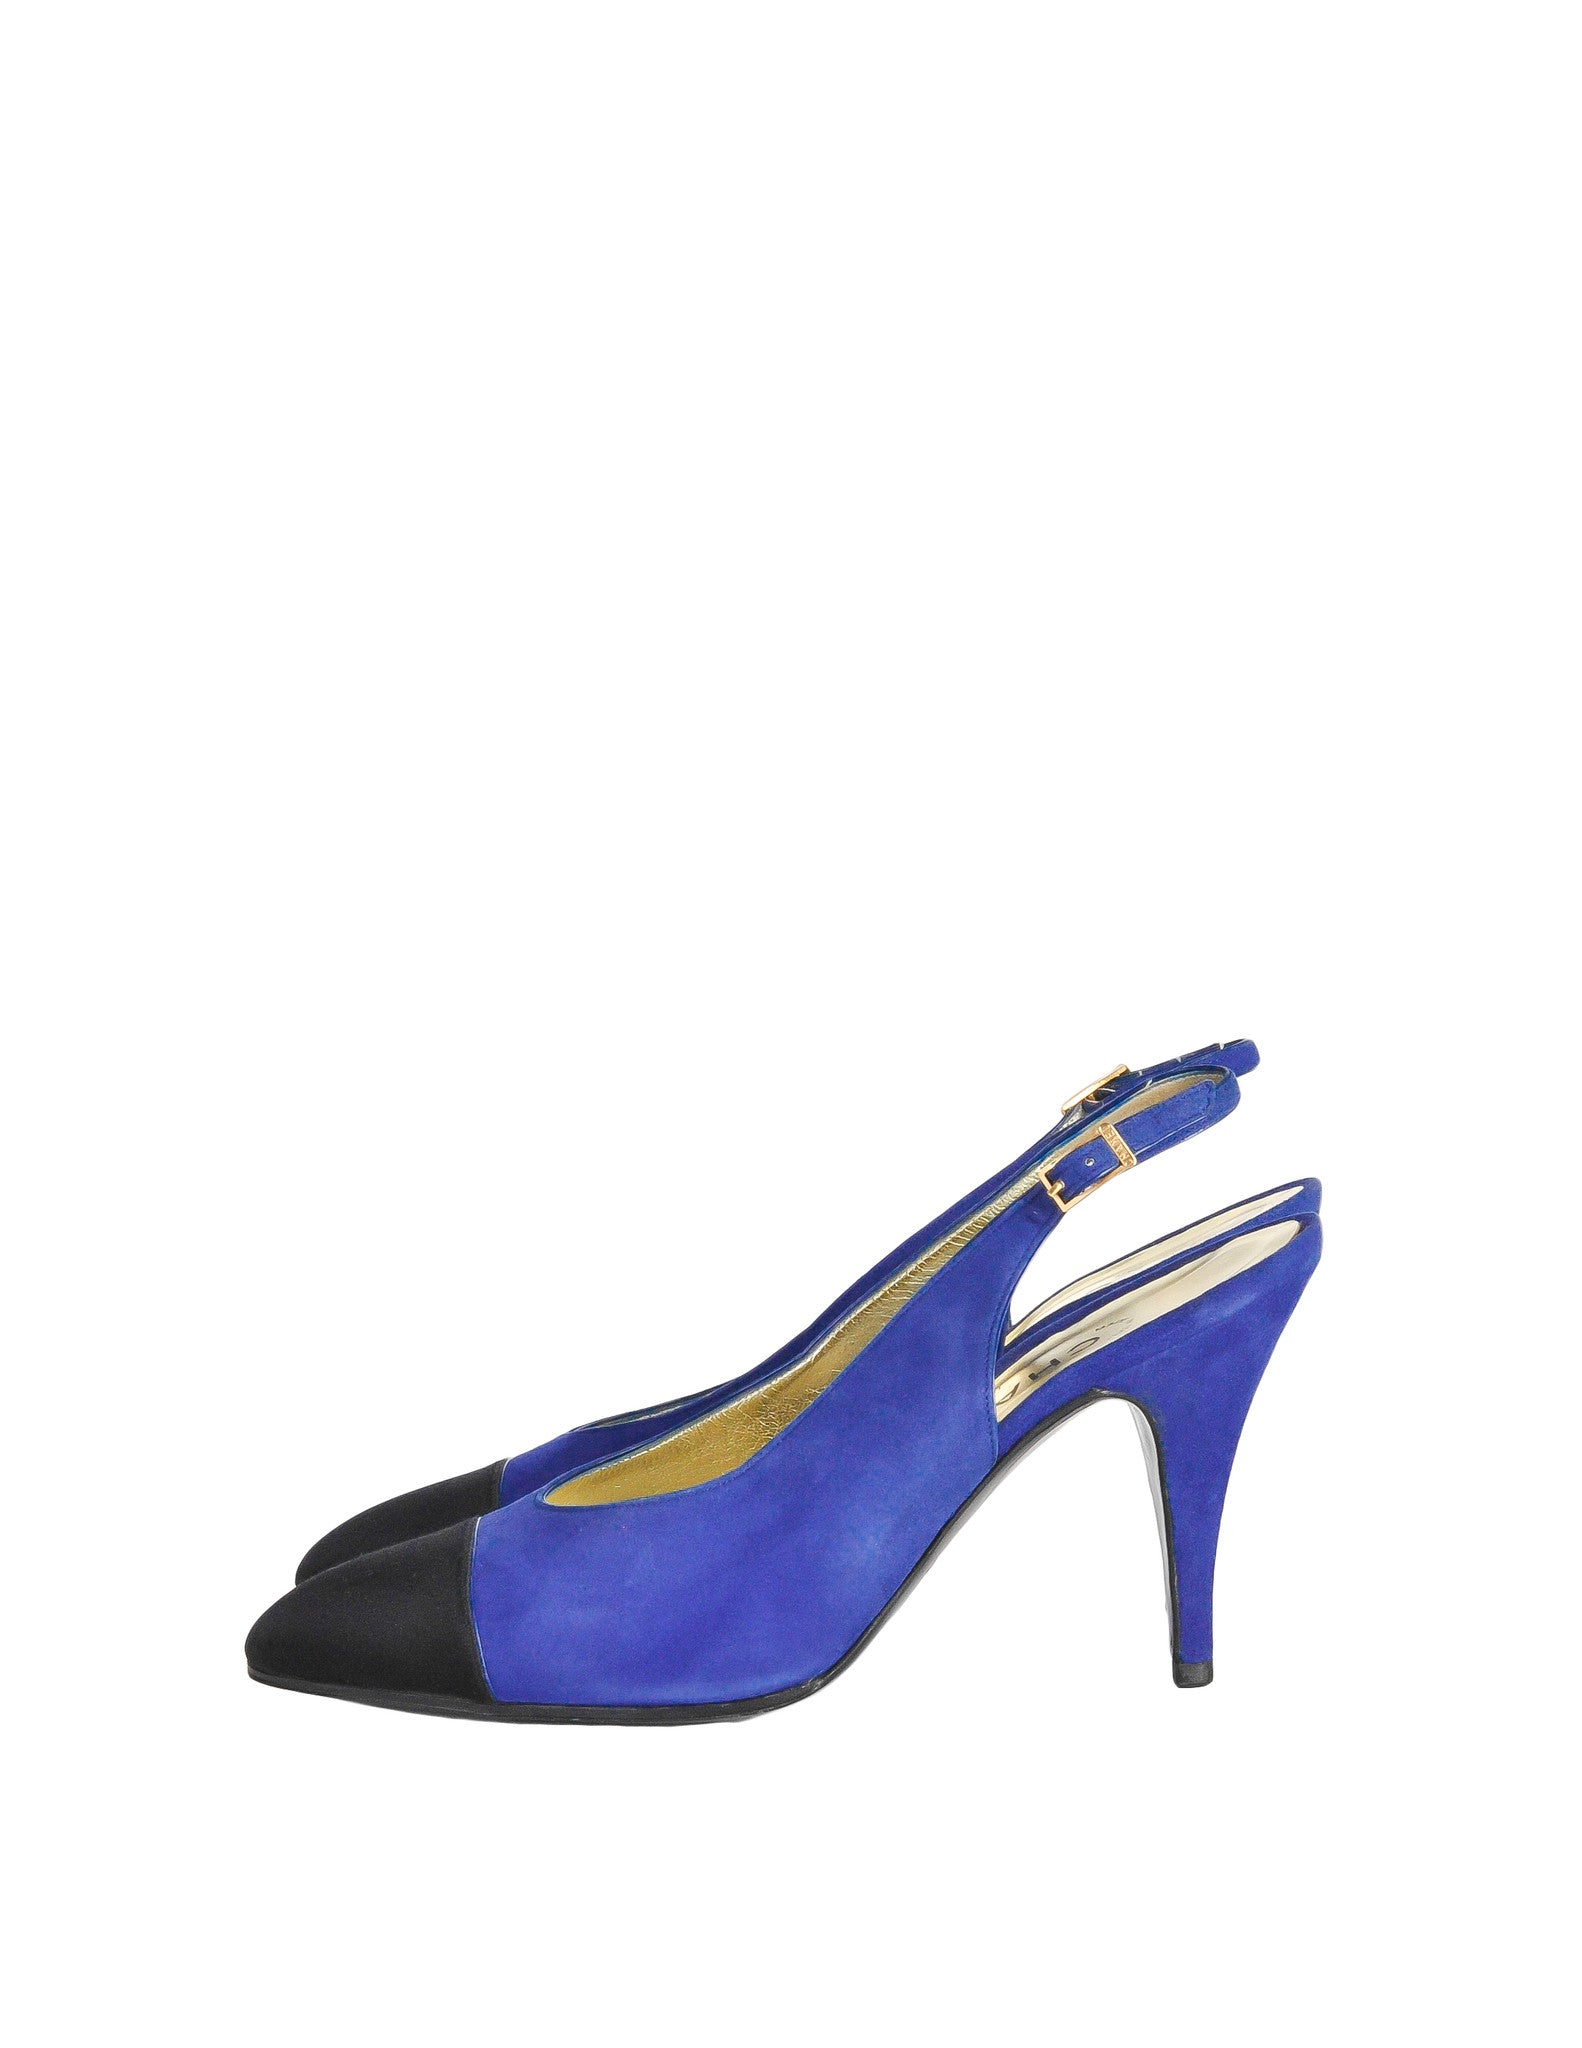 Chanel Vintage Blue Suede and Black Satin Heels - Amarcord Vintage Fashion  - 1